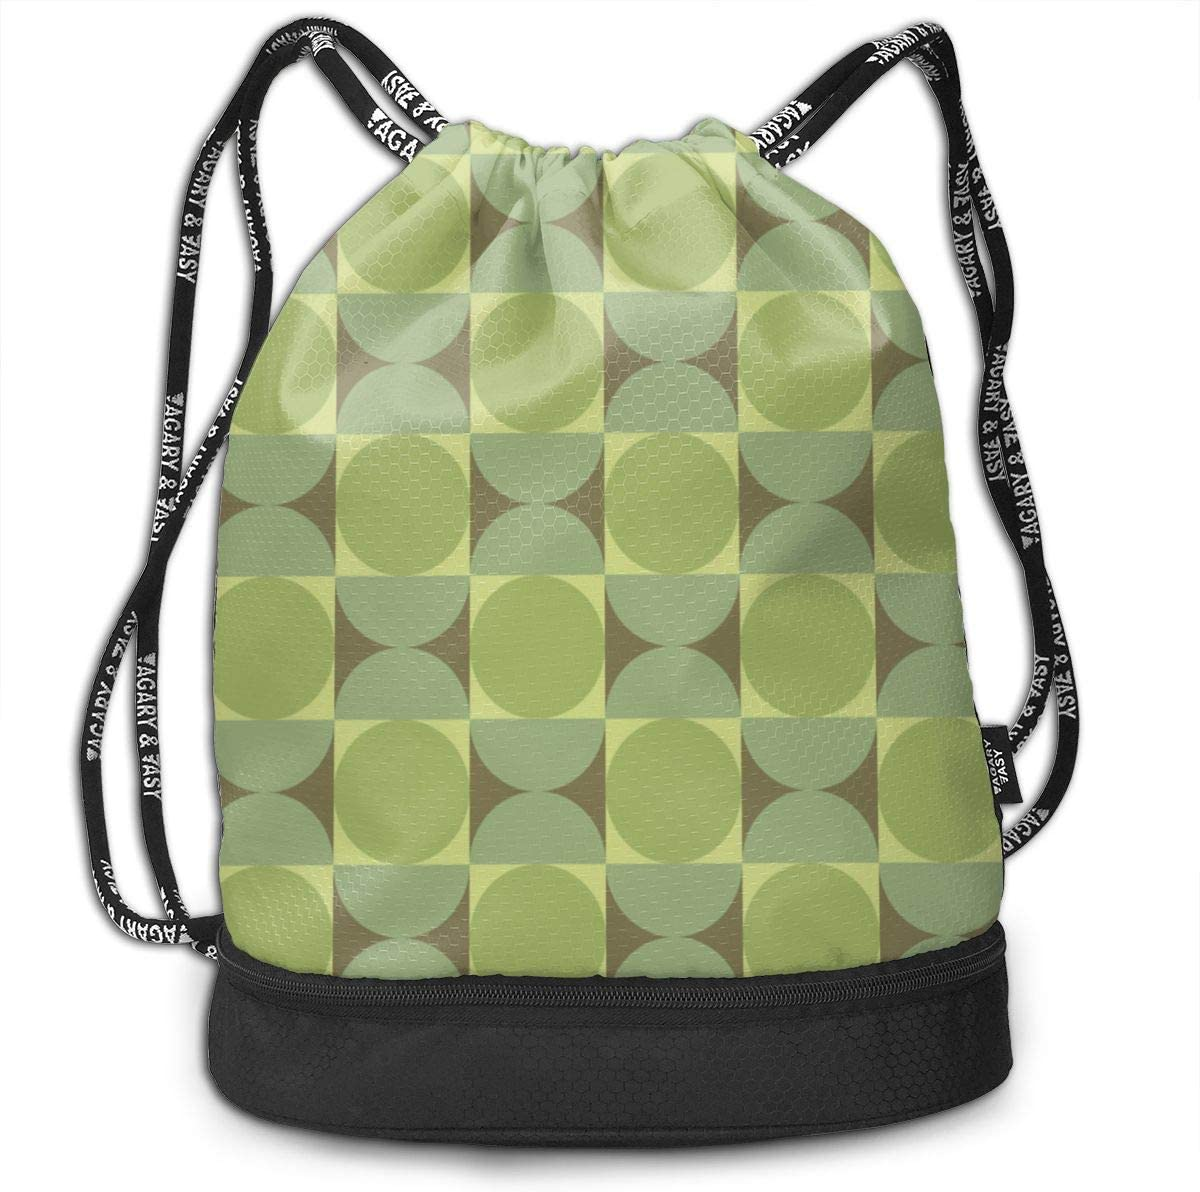 Retro Petite Reverb Tambourine Green Drawstring Backpack Sports Athletic Gym Cinch Sack String Storage Bags for Hiking Travel Beach